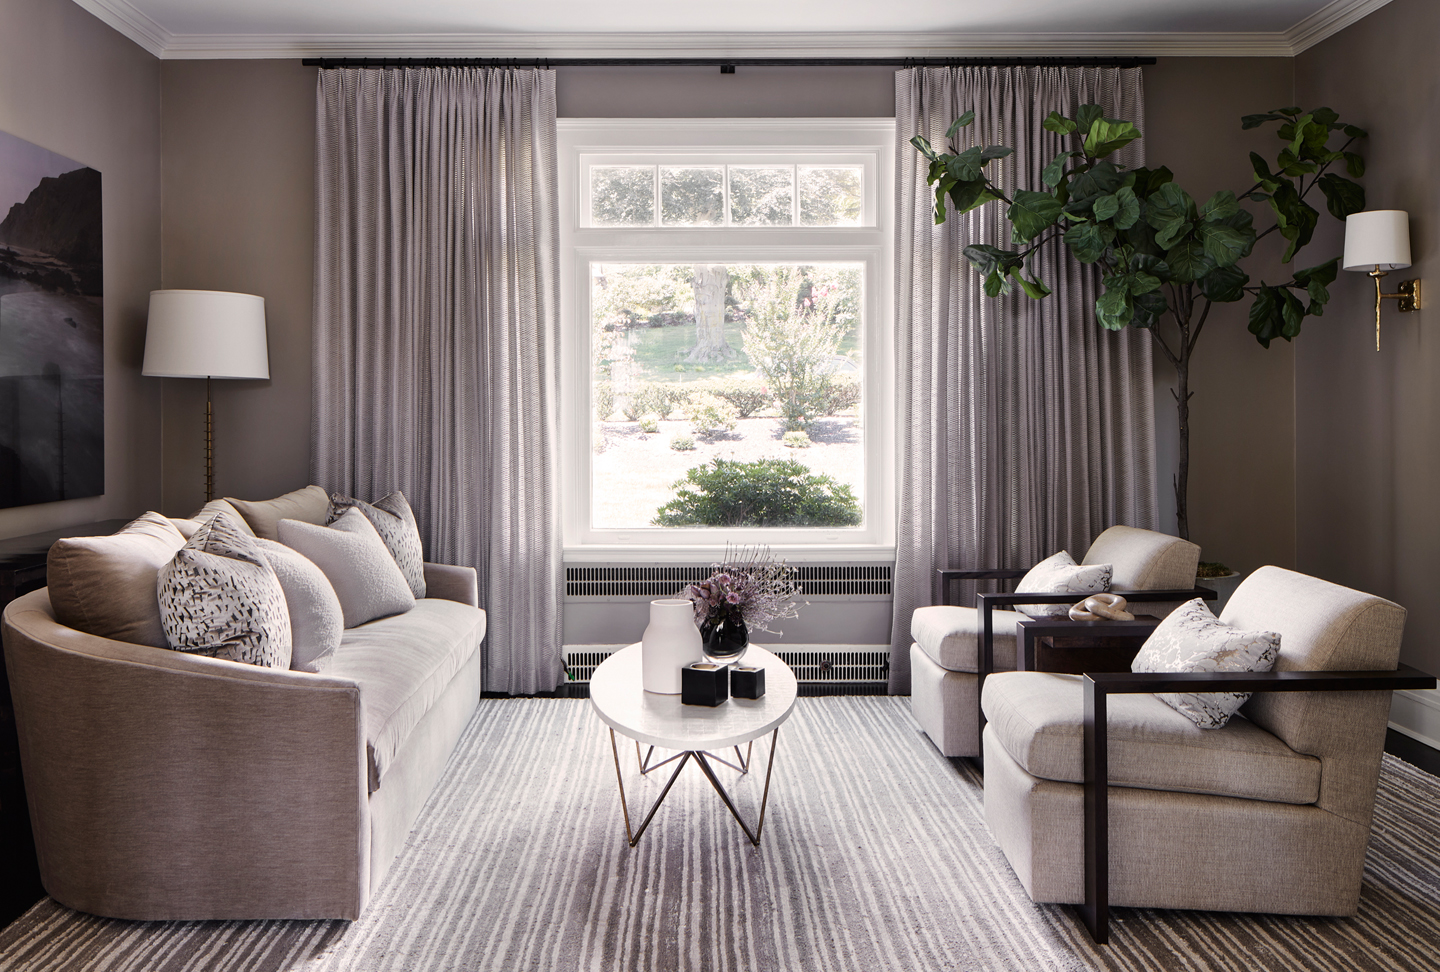 living room design with window treatments